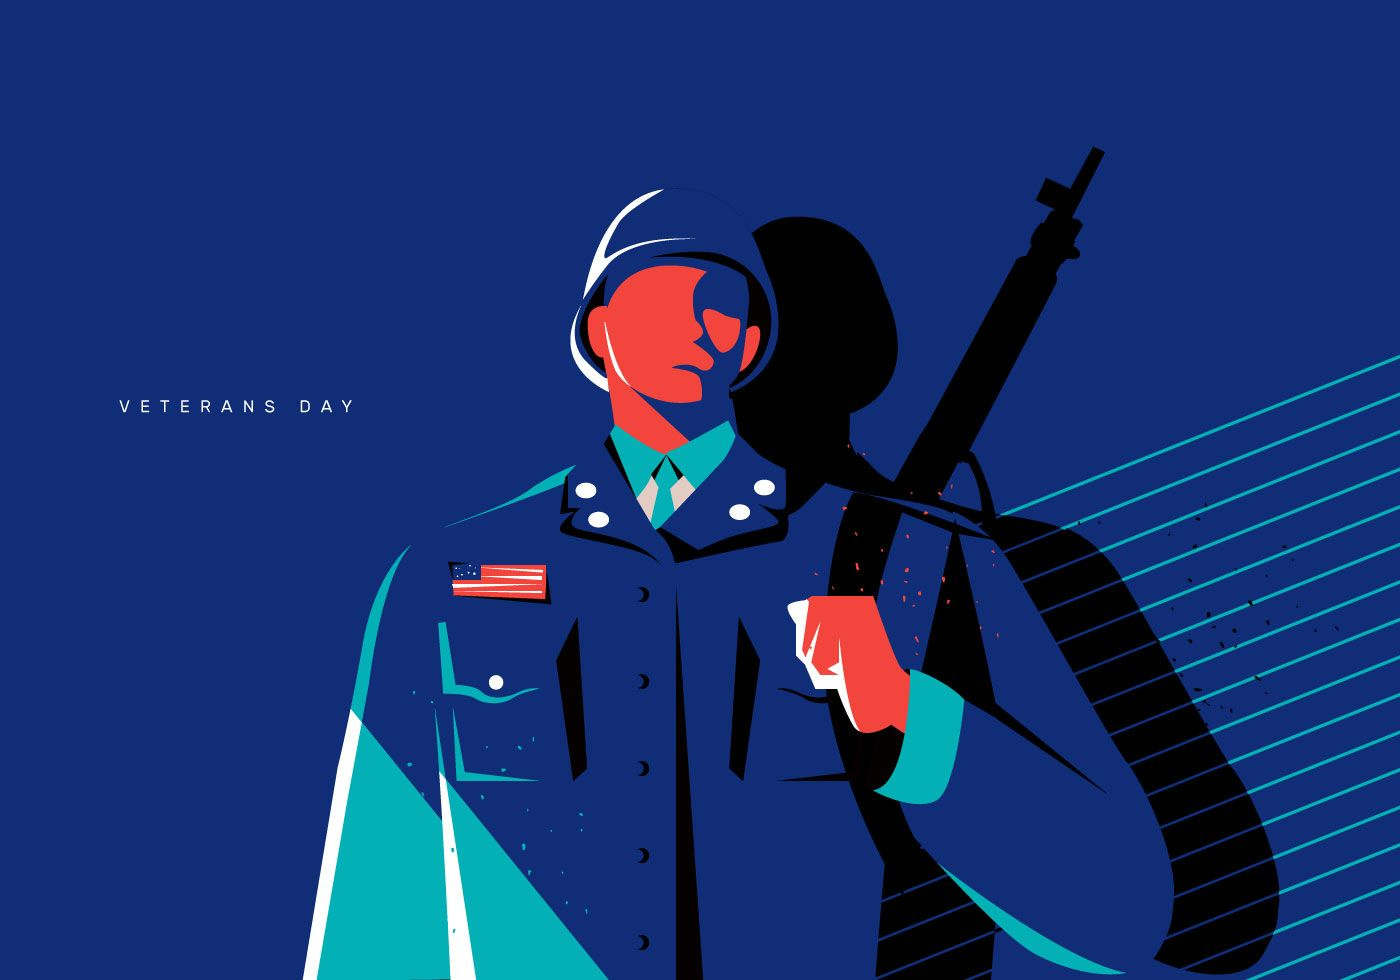 Veteran S Day Concept Soldier Illustration Flat Vector Background Soldier Drawing Soldier Graphic Illustration